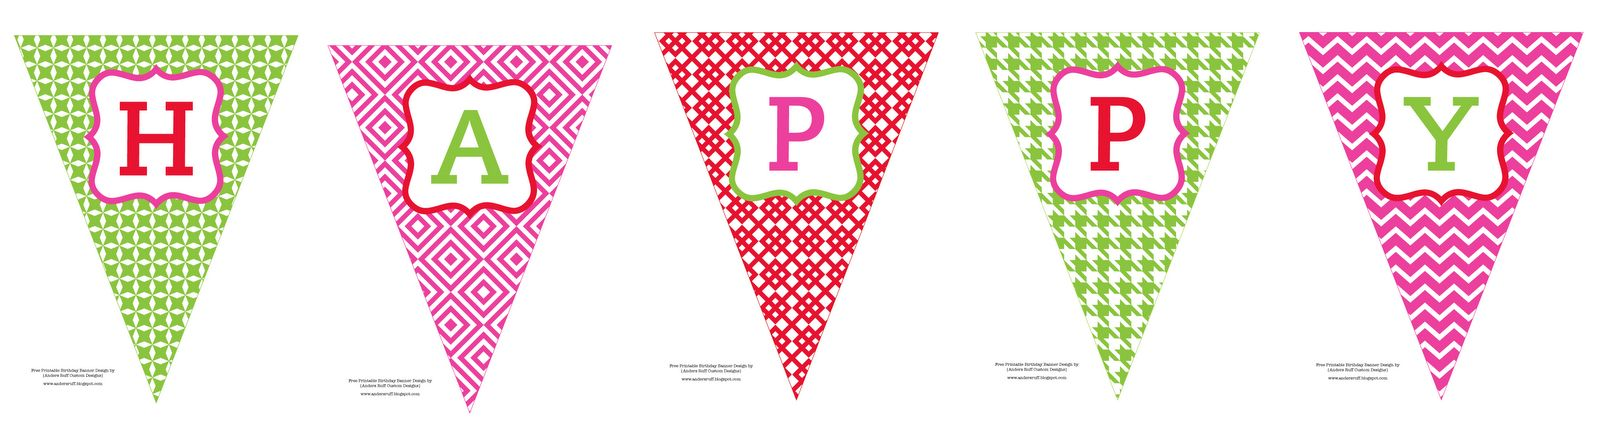 Free printable happy birthday banner templates httpvalery free printable happy birthday banner templates httpvalery novoselskyfree printable happy birthday banner templates 2221ml maxwellsz